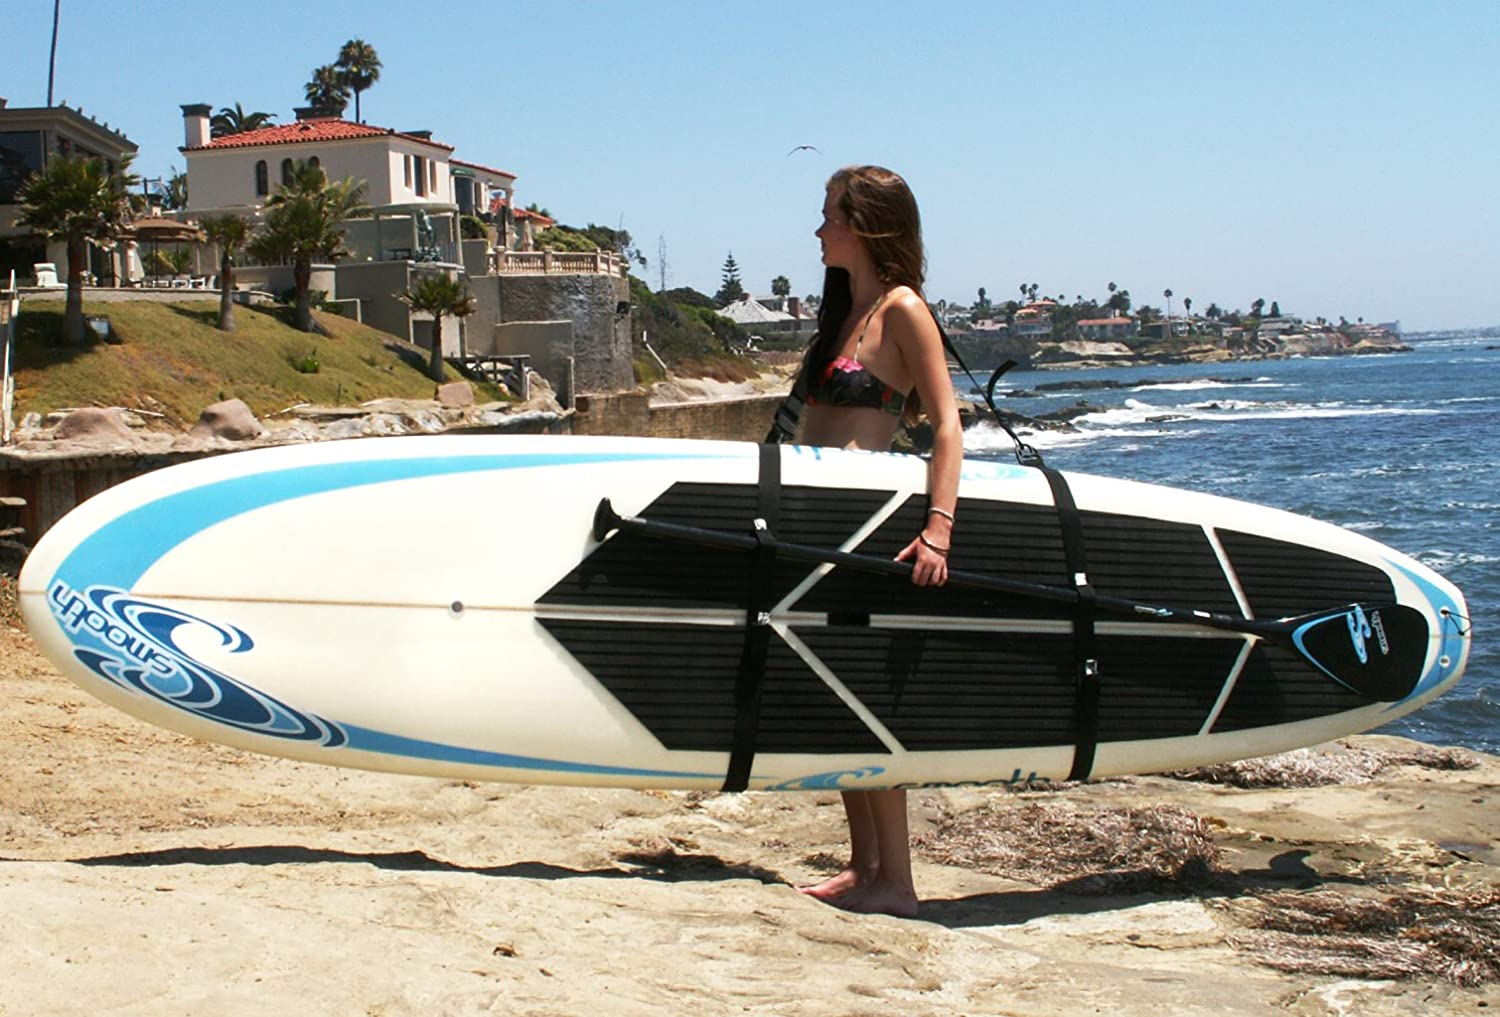 Big Board Schlepper with BELT PACK Adjustable Standup Paddle Board Surfboard Carrier Sling Shoulder Strap Better Surf...than Sorry BIG-SCHLEP-FAN